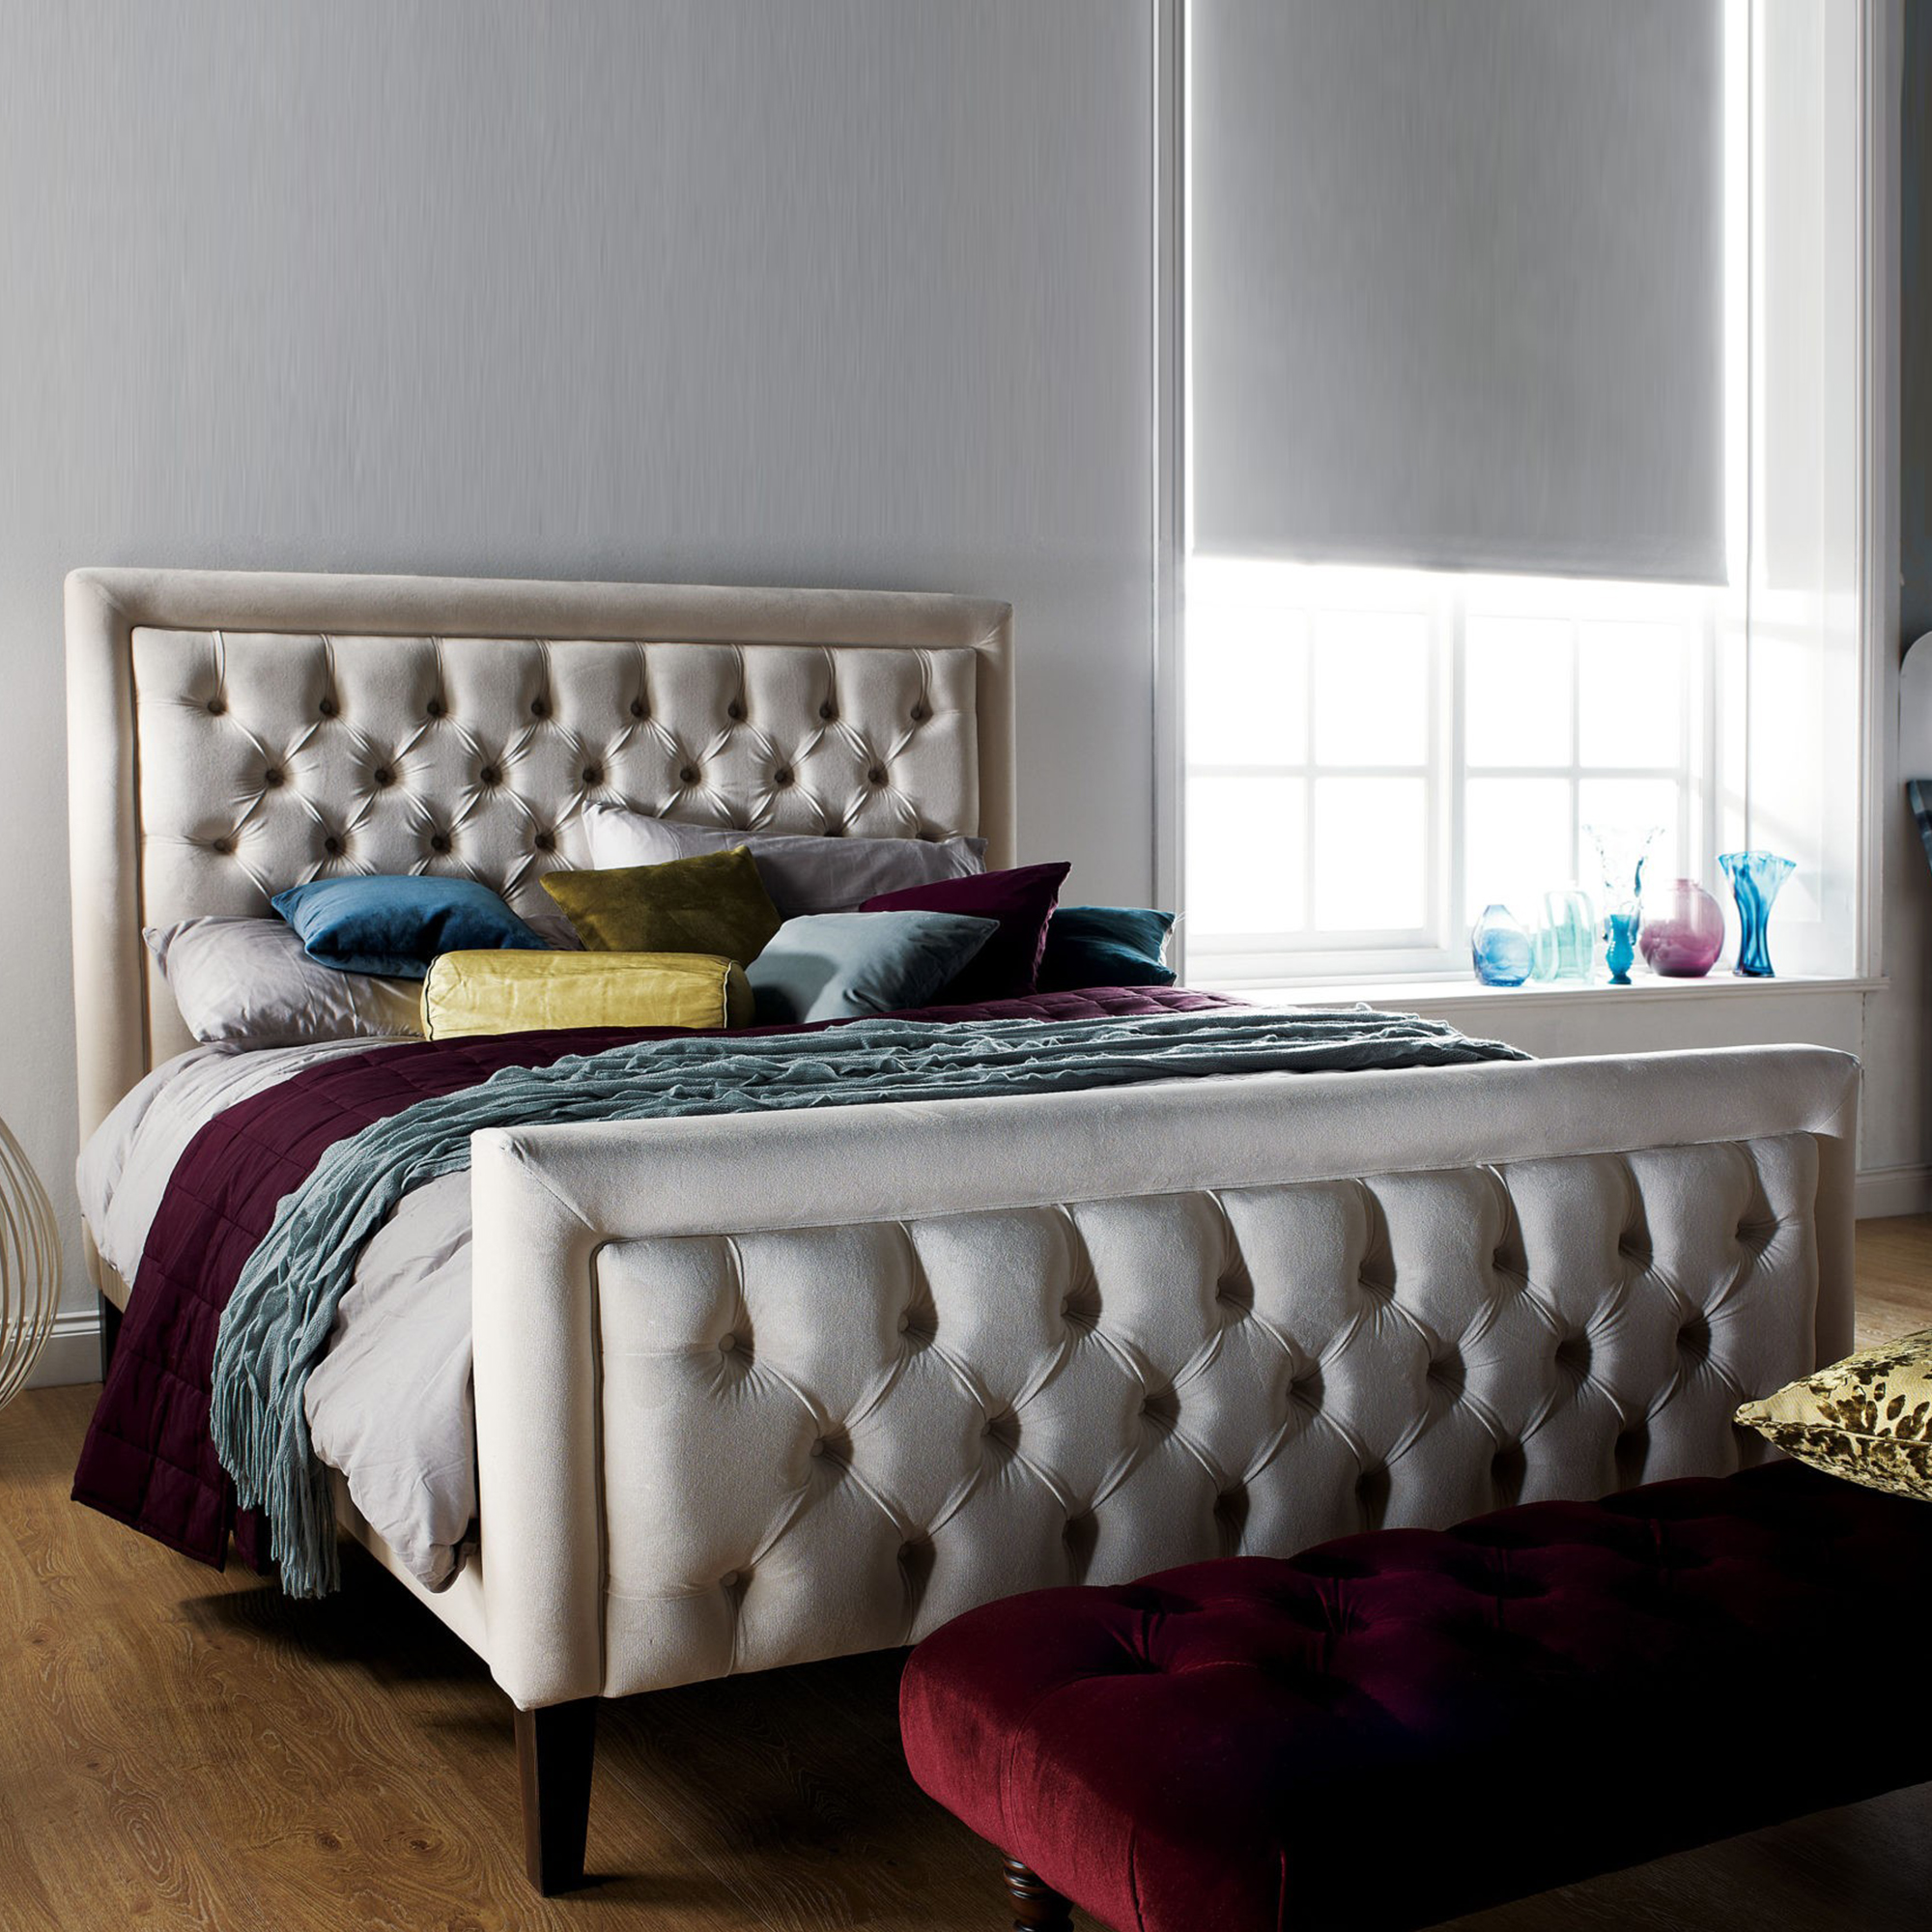 Kingsley High End Bed Frame All Beds Fishpools : 7480 from www.fishpools.co.uk size 1000 x 598 jpeg 152kB